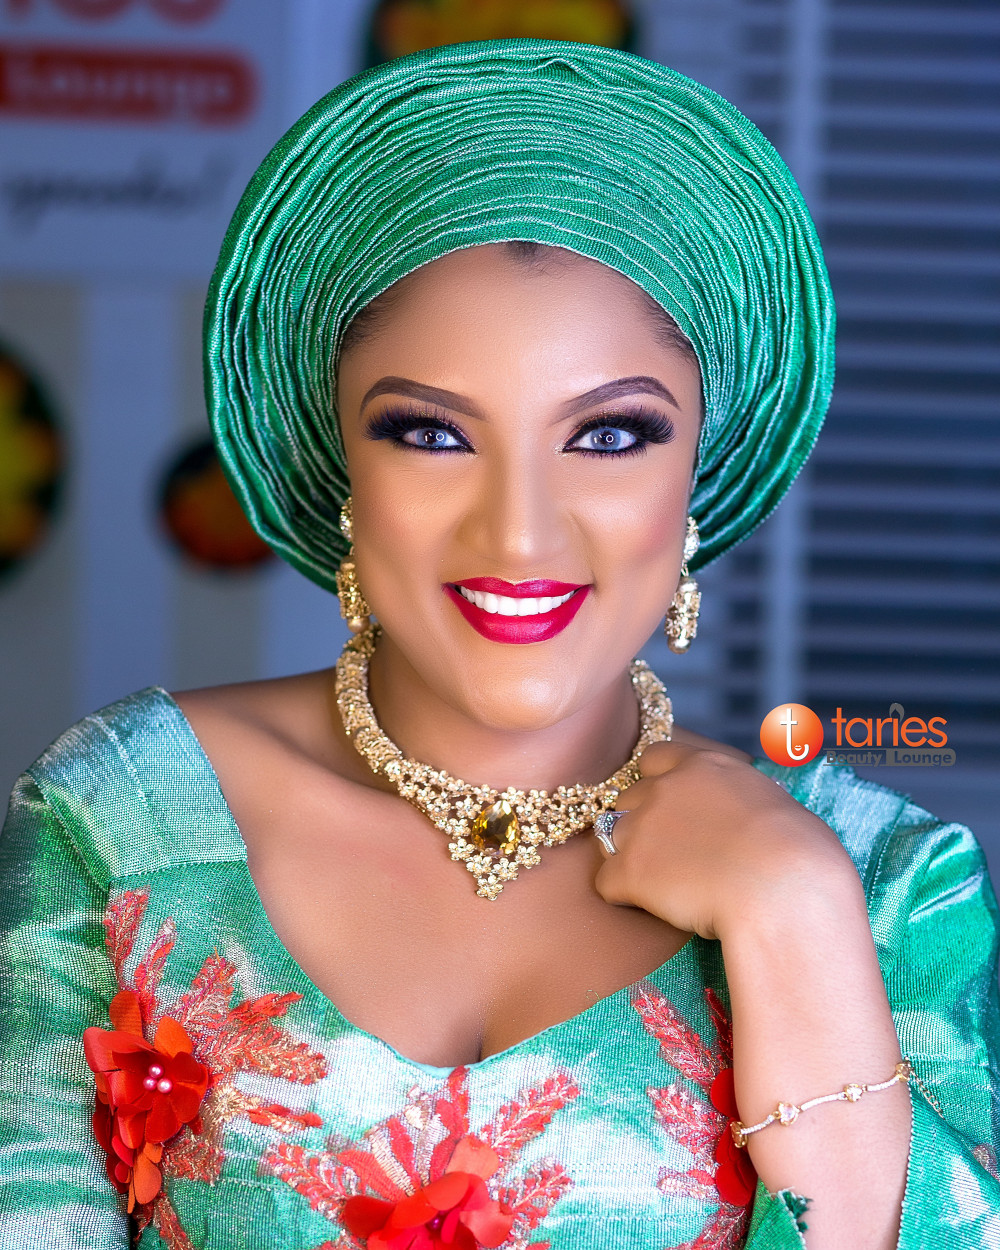 #BBNaija's Gifty is Channeling a Yoruba Bride in New Birthday Photos!